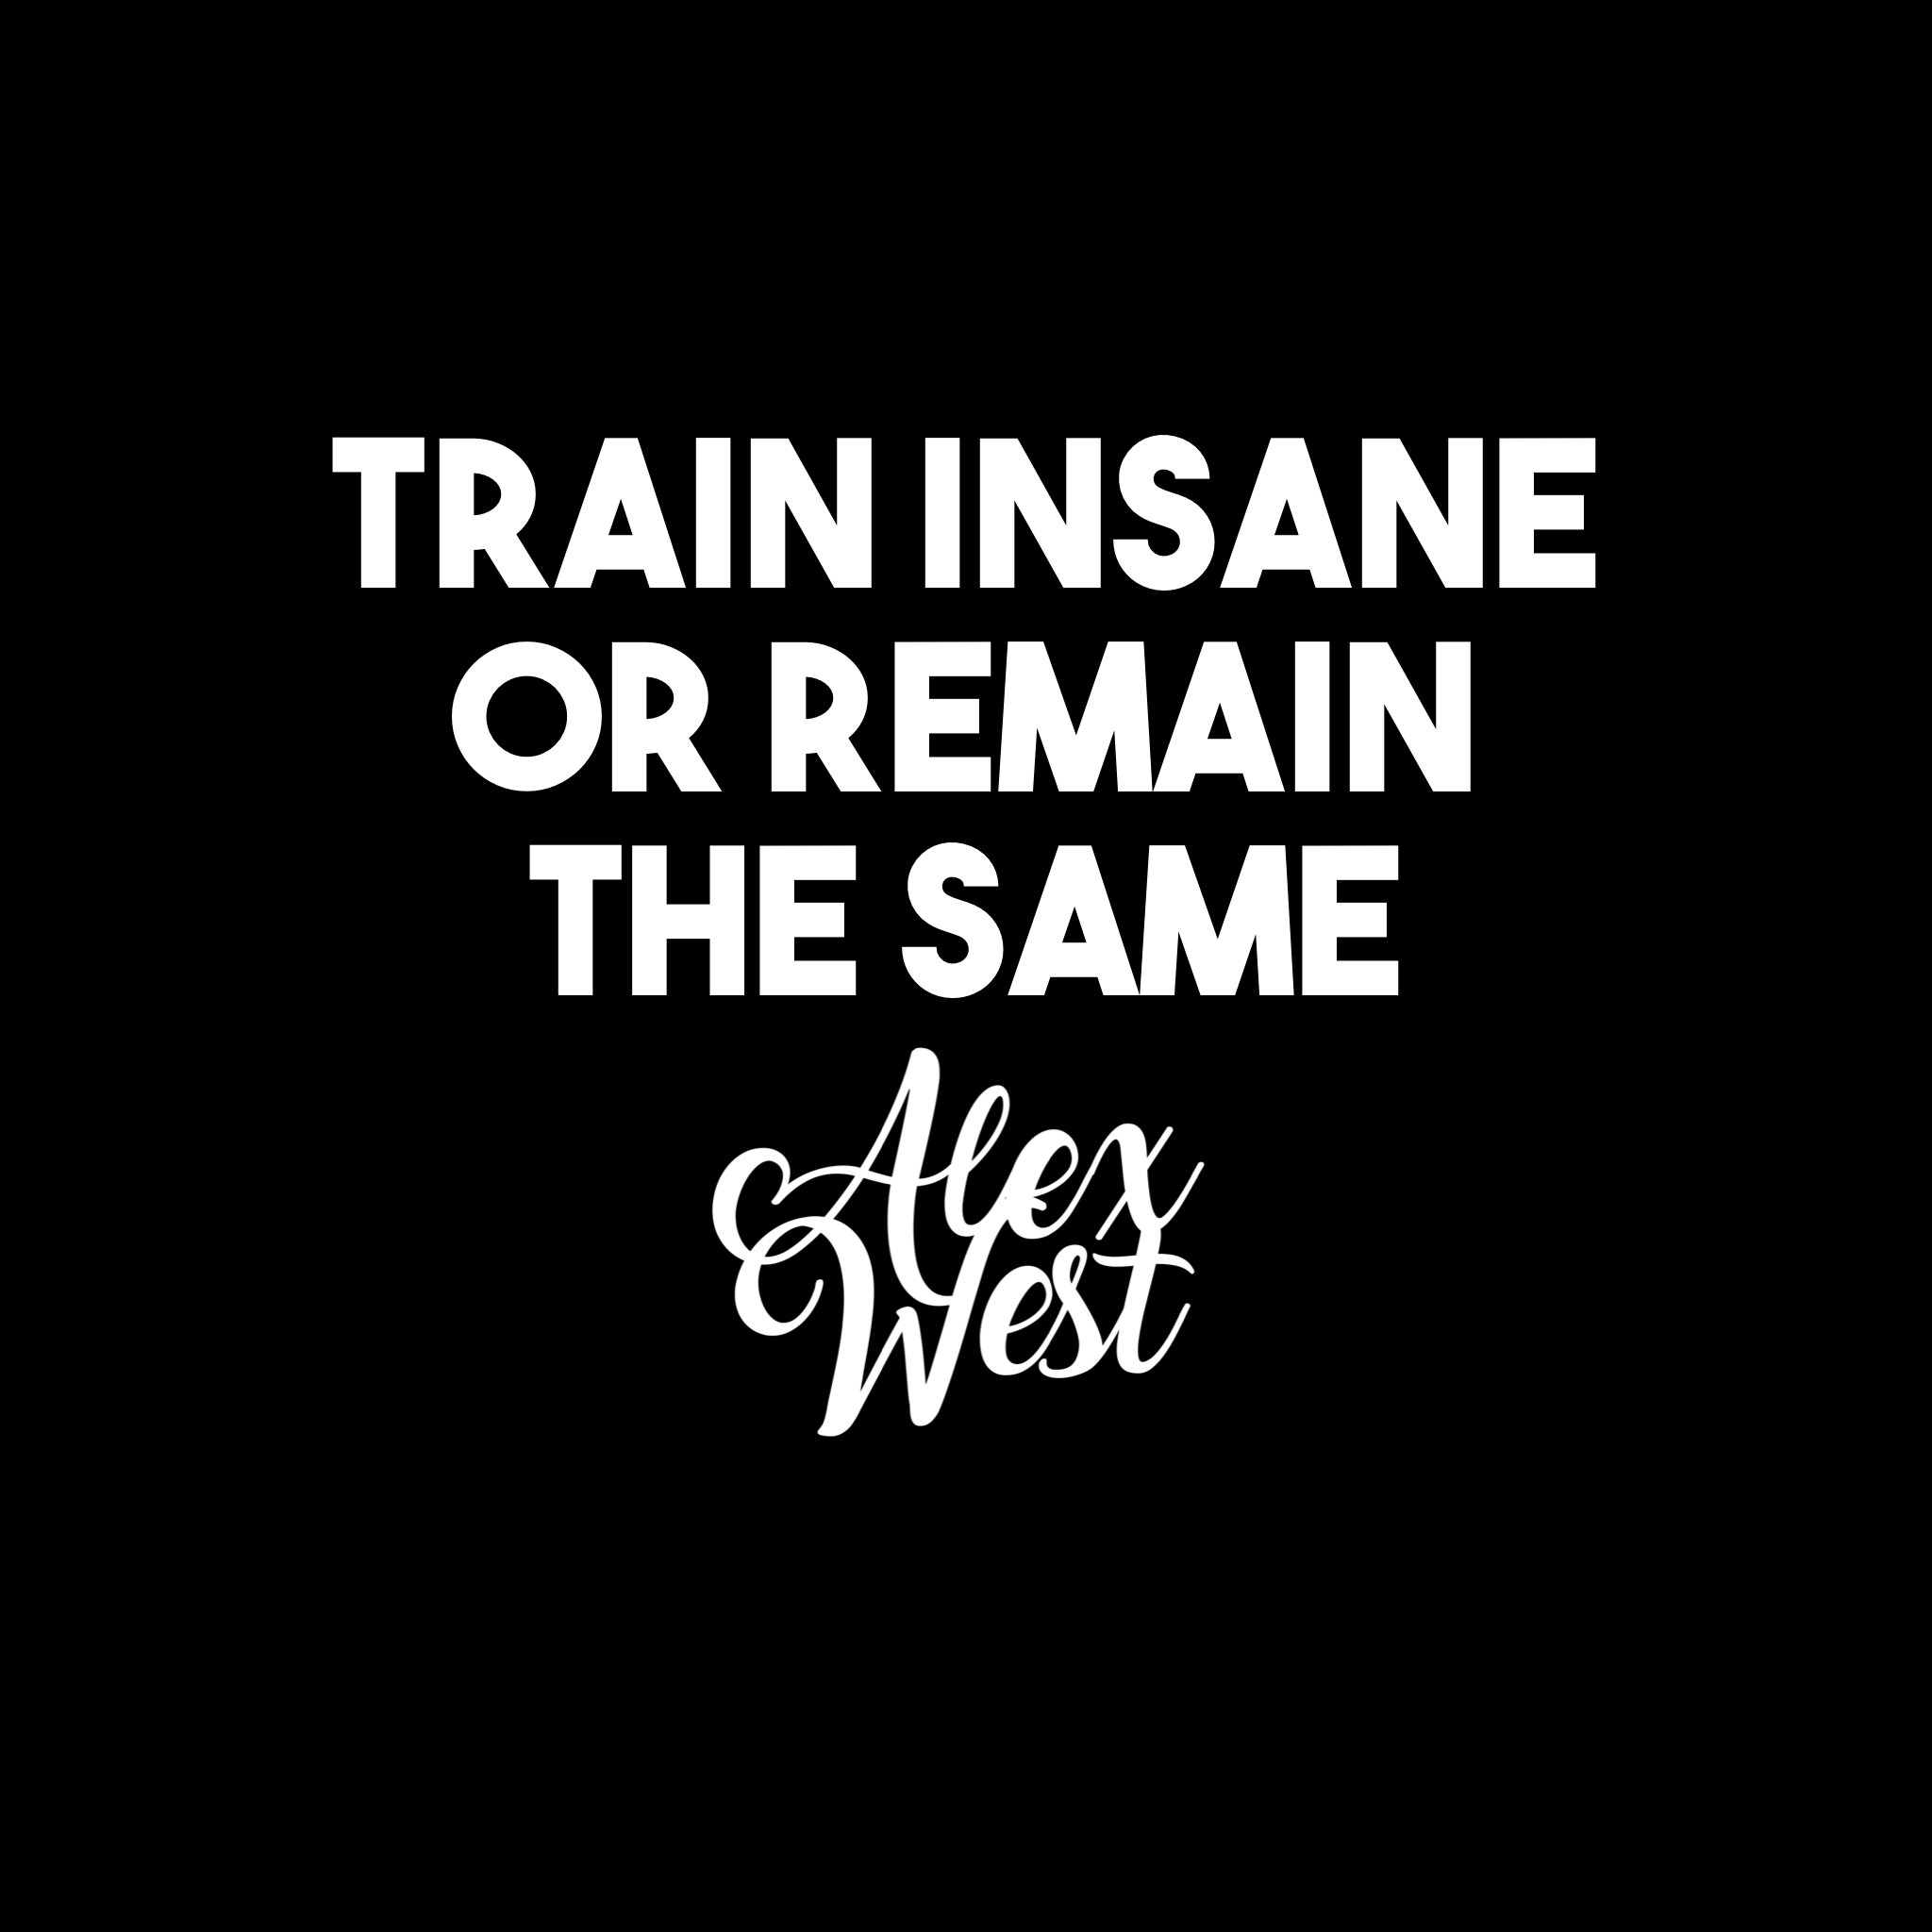 TRAIN INSANE OR REMAIN THE SAME motivation quotes success inspiration gym fitness nike clothes fashion luxury success